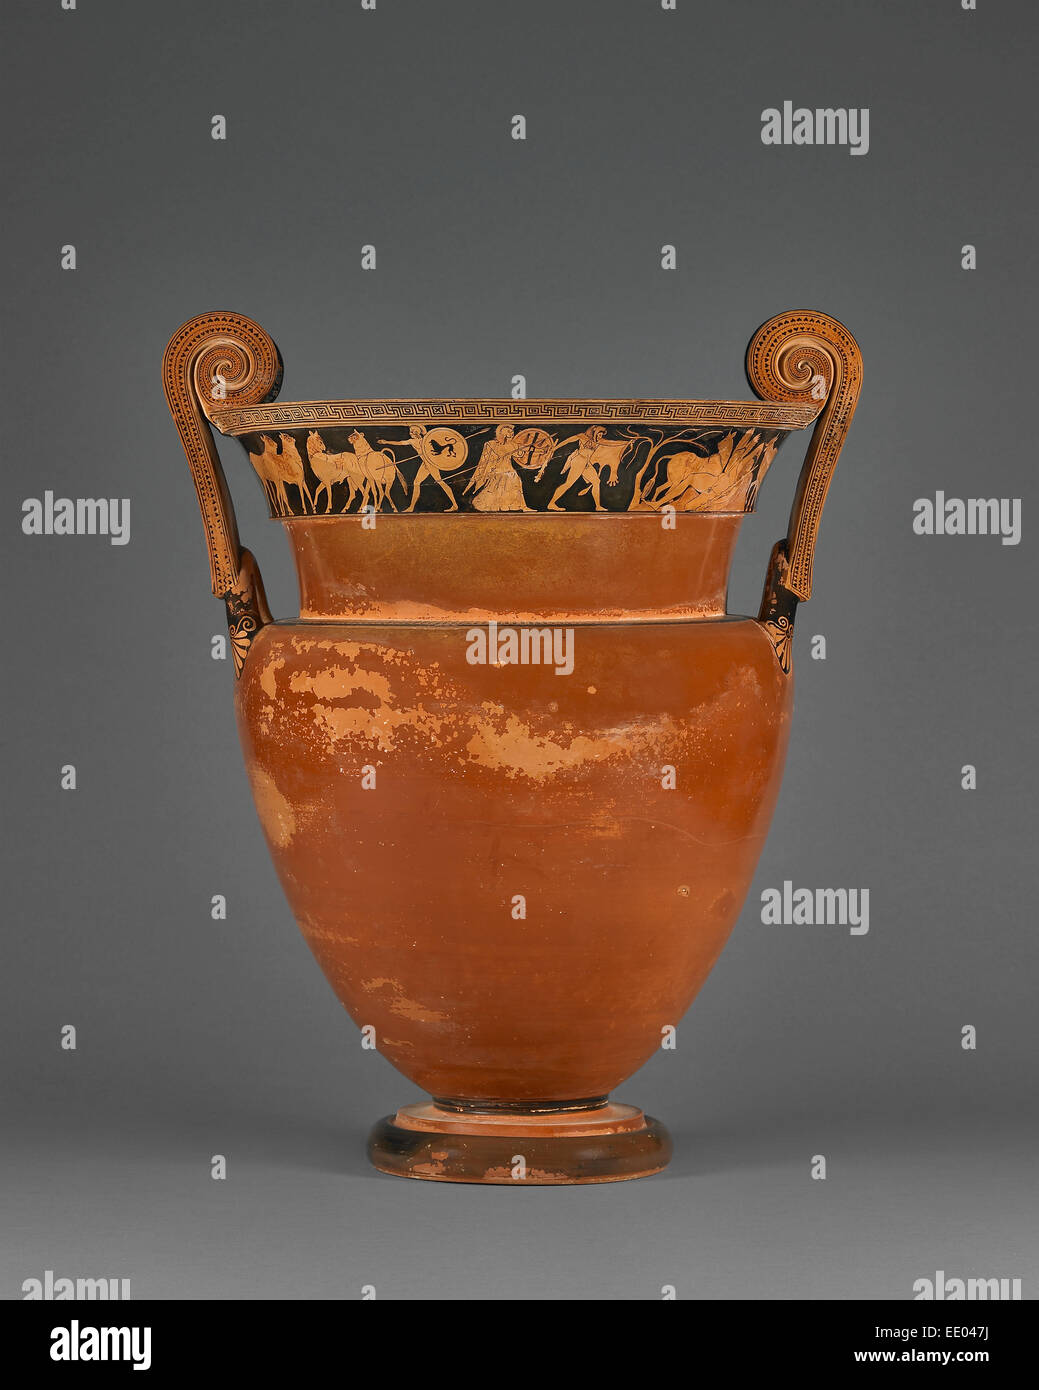 Attic Red-Figure Volute Krater; Attributed to Kleophrades Painter and a pupil, Greek (Attic), active 505 - 475 B.C.; - Stock Image